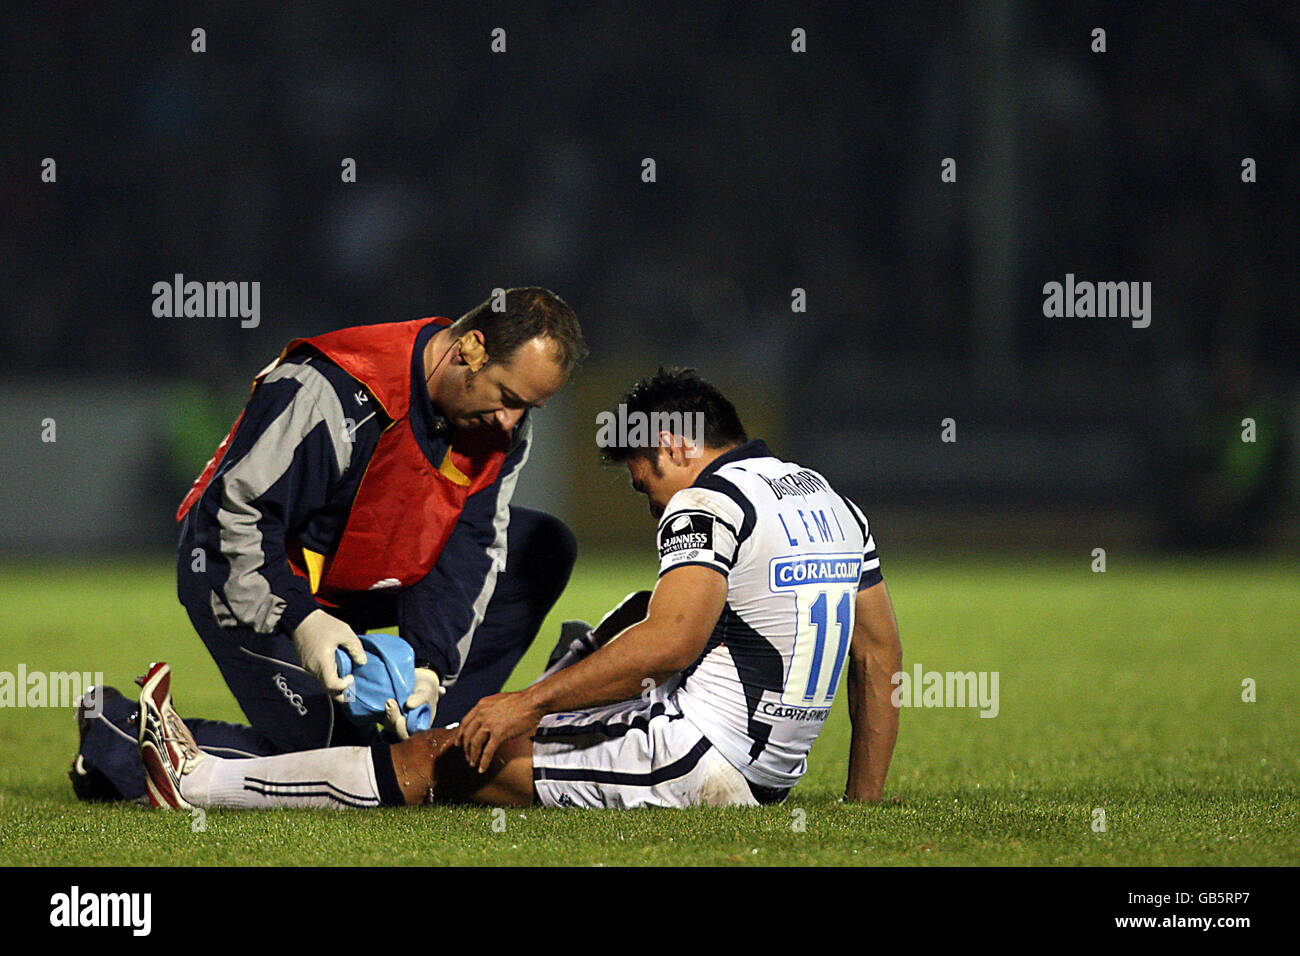 Rugby Union - Guinness Premiership - Bristol Rugby v Sale Sharks - Memorial Stadium Photo Stock